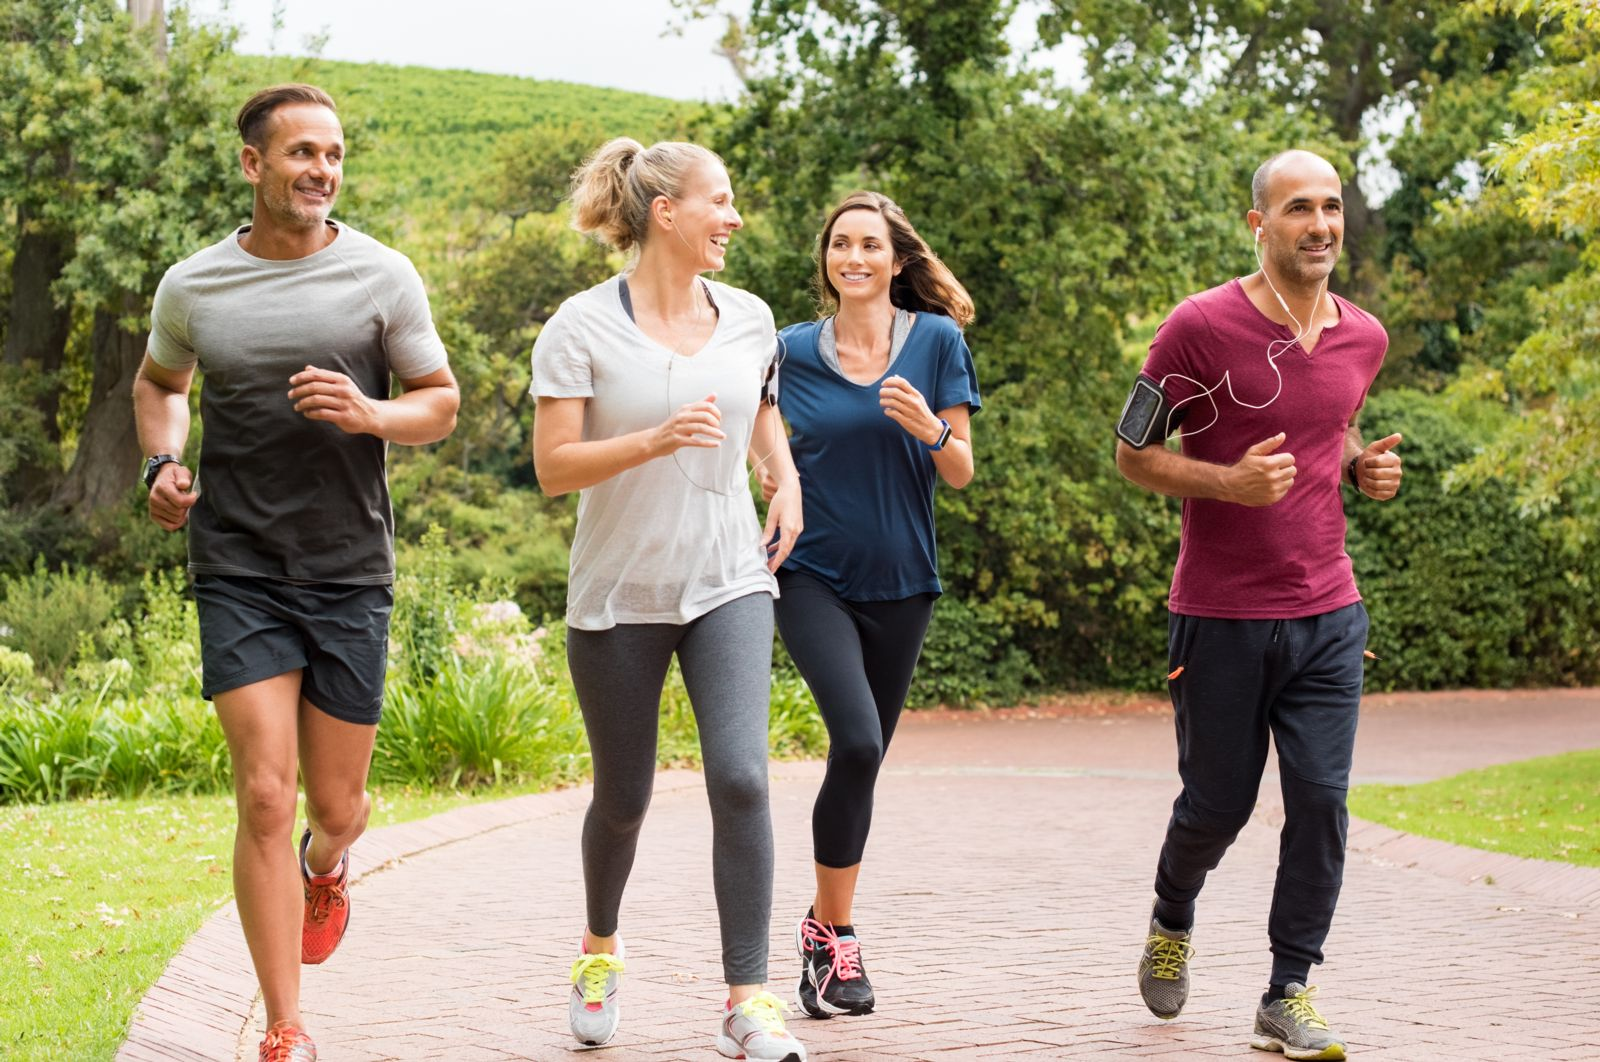 All runners just want to keep running. Your Houston Podiatrist can help!